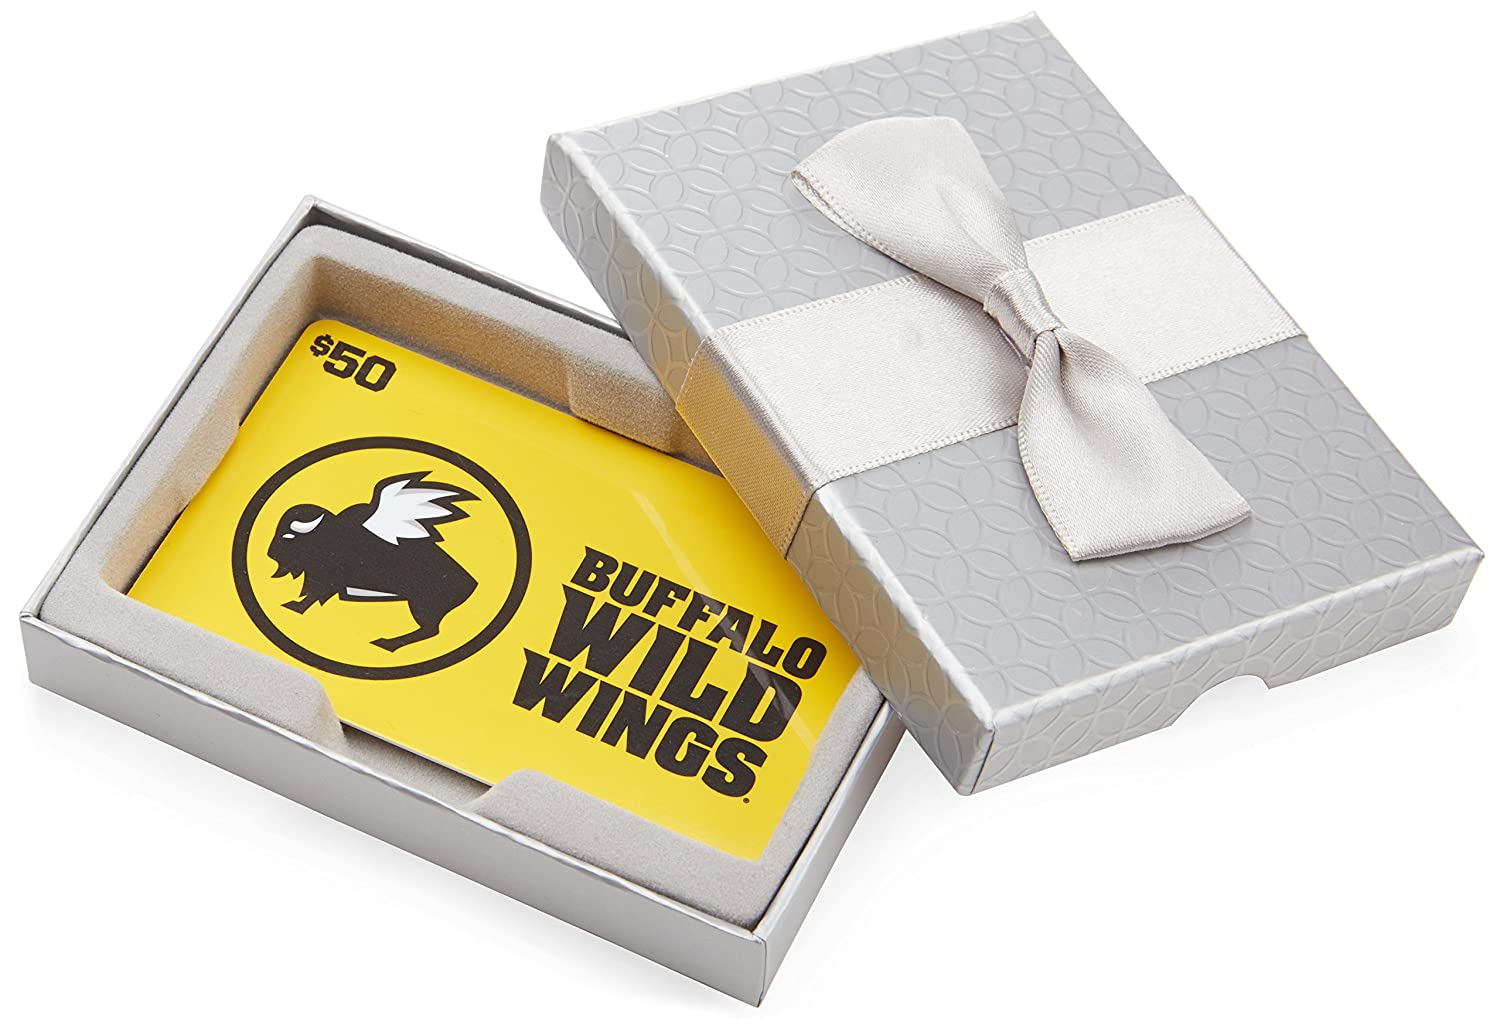 Amazon.com: Buffalo Wild Wings $50 Gift Card - In a Gift Box: Gift Cards